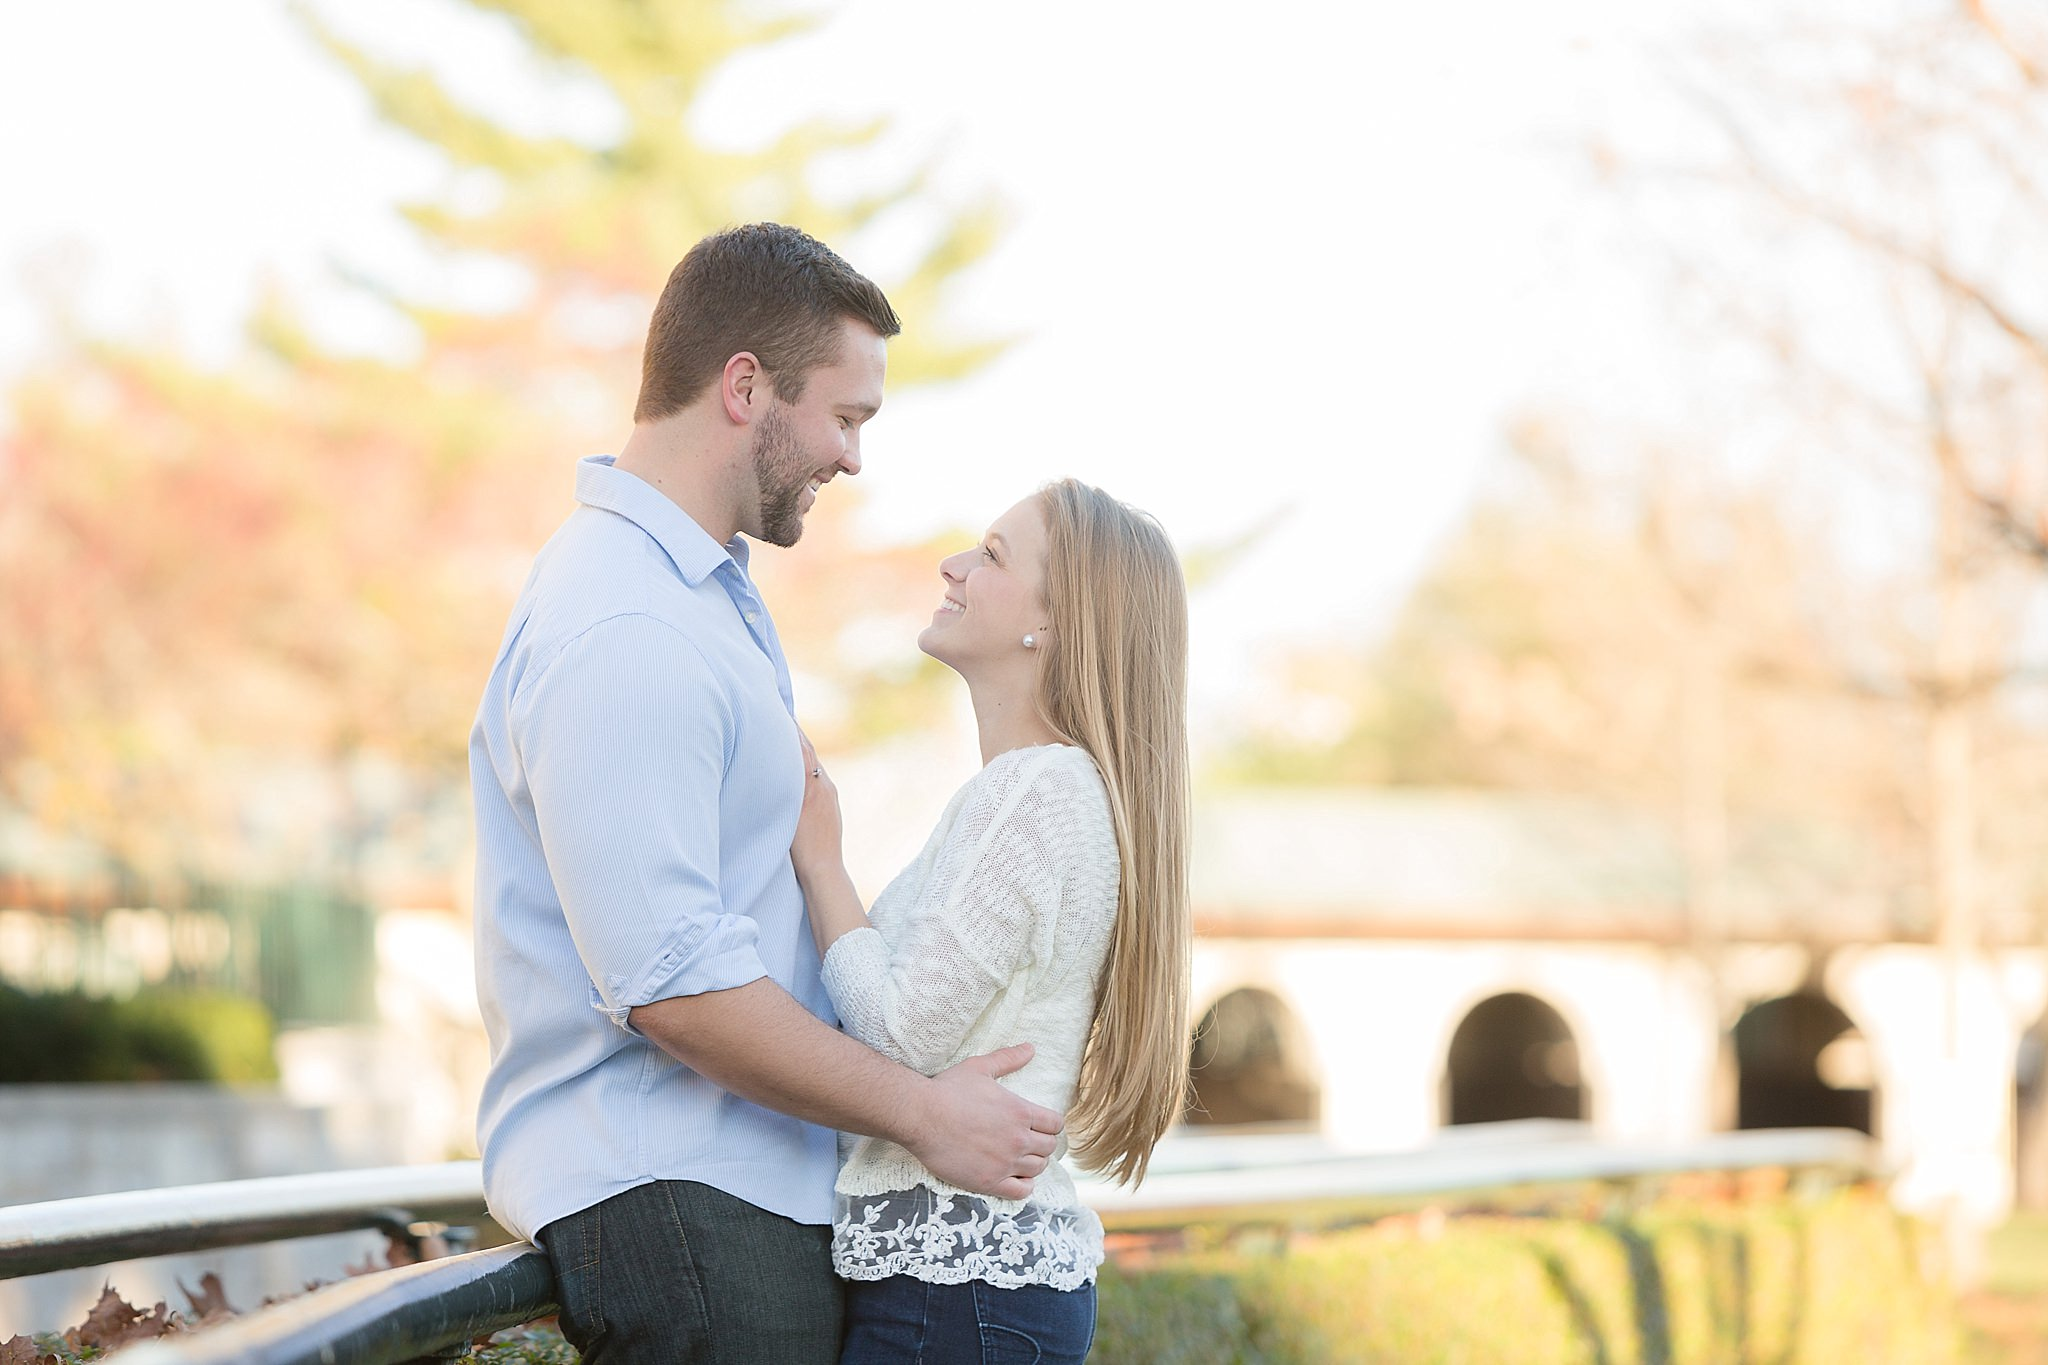 Emily+Corey - Engagement Session Keeneland in Lexington, KY